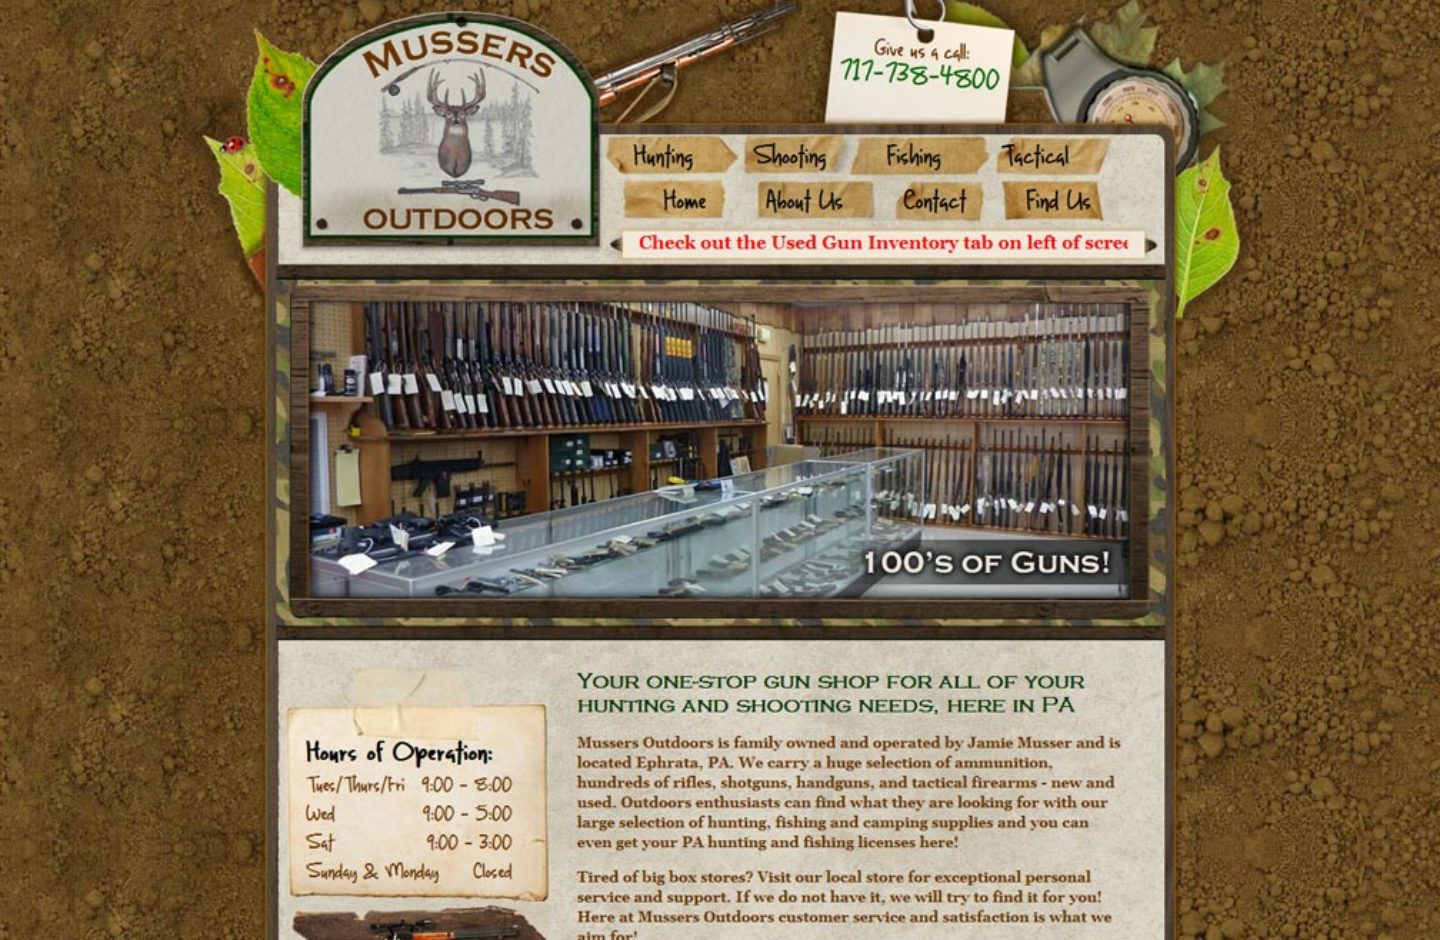 Mussers Outdoors